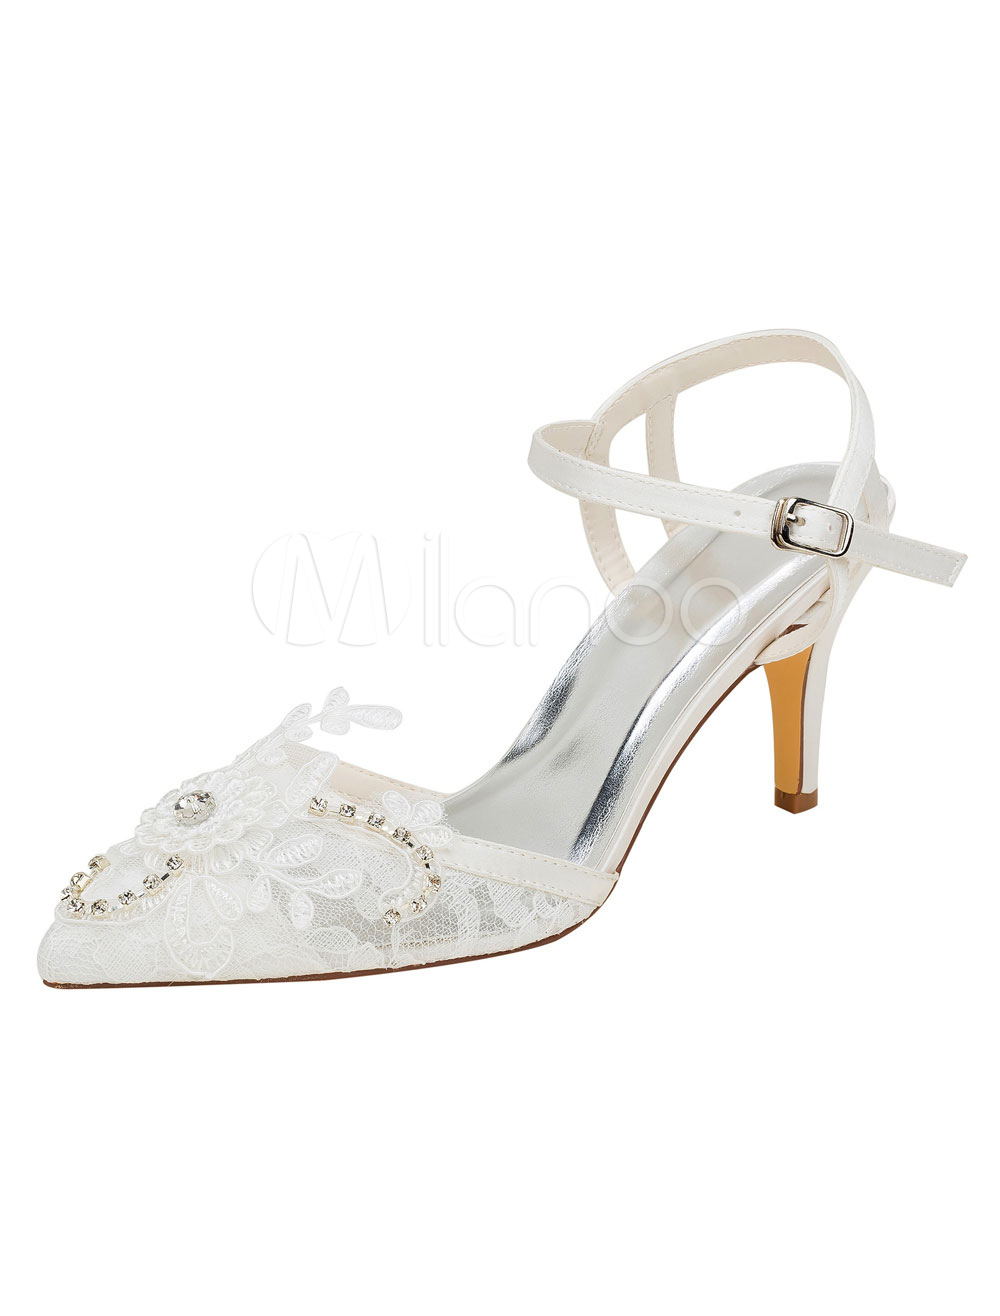 Buy Ivory Wedding Shoes Lace Pointed Toe Rhinestones Slingbacks High Heel Pumps for $53.09 in Milanoo store